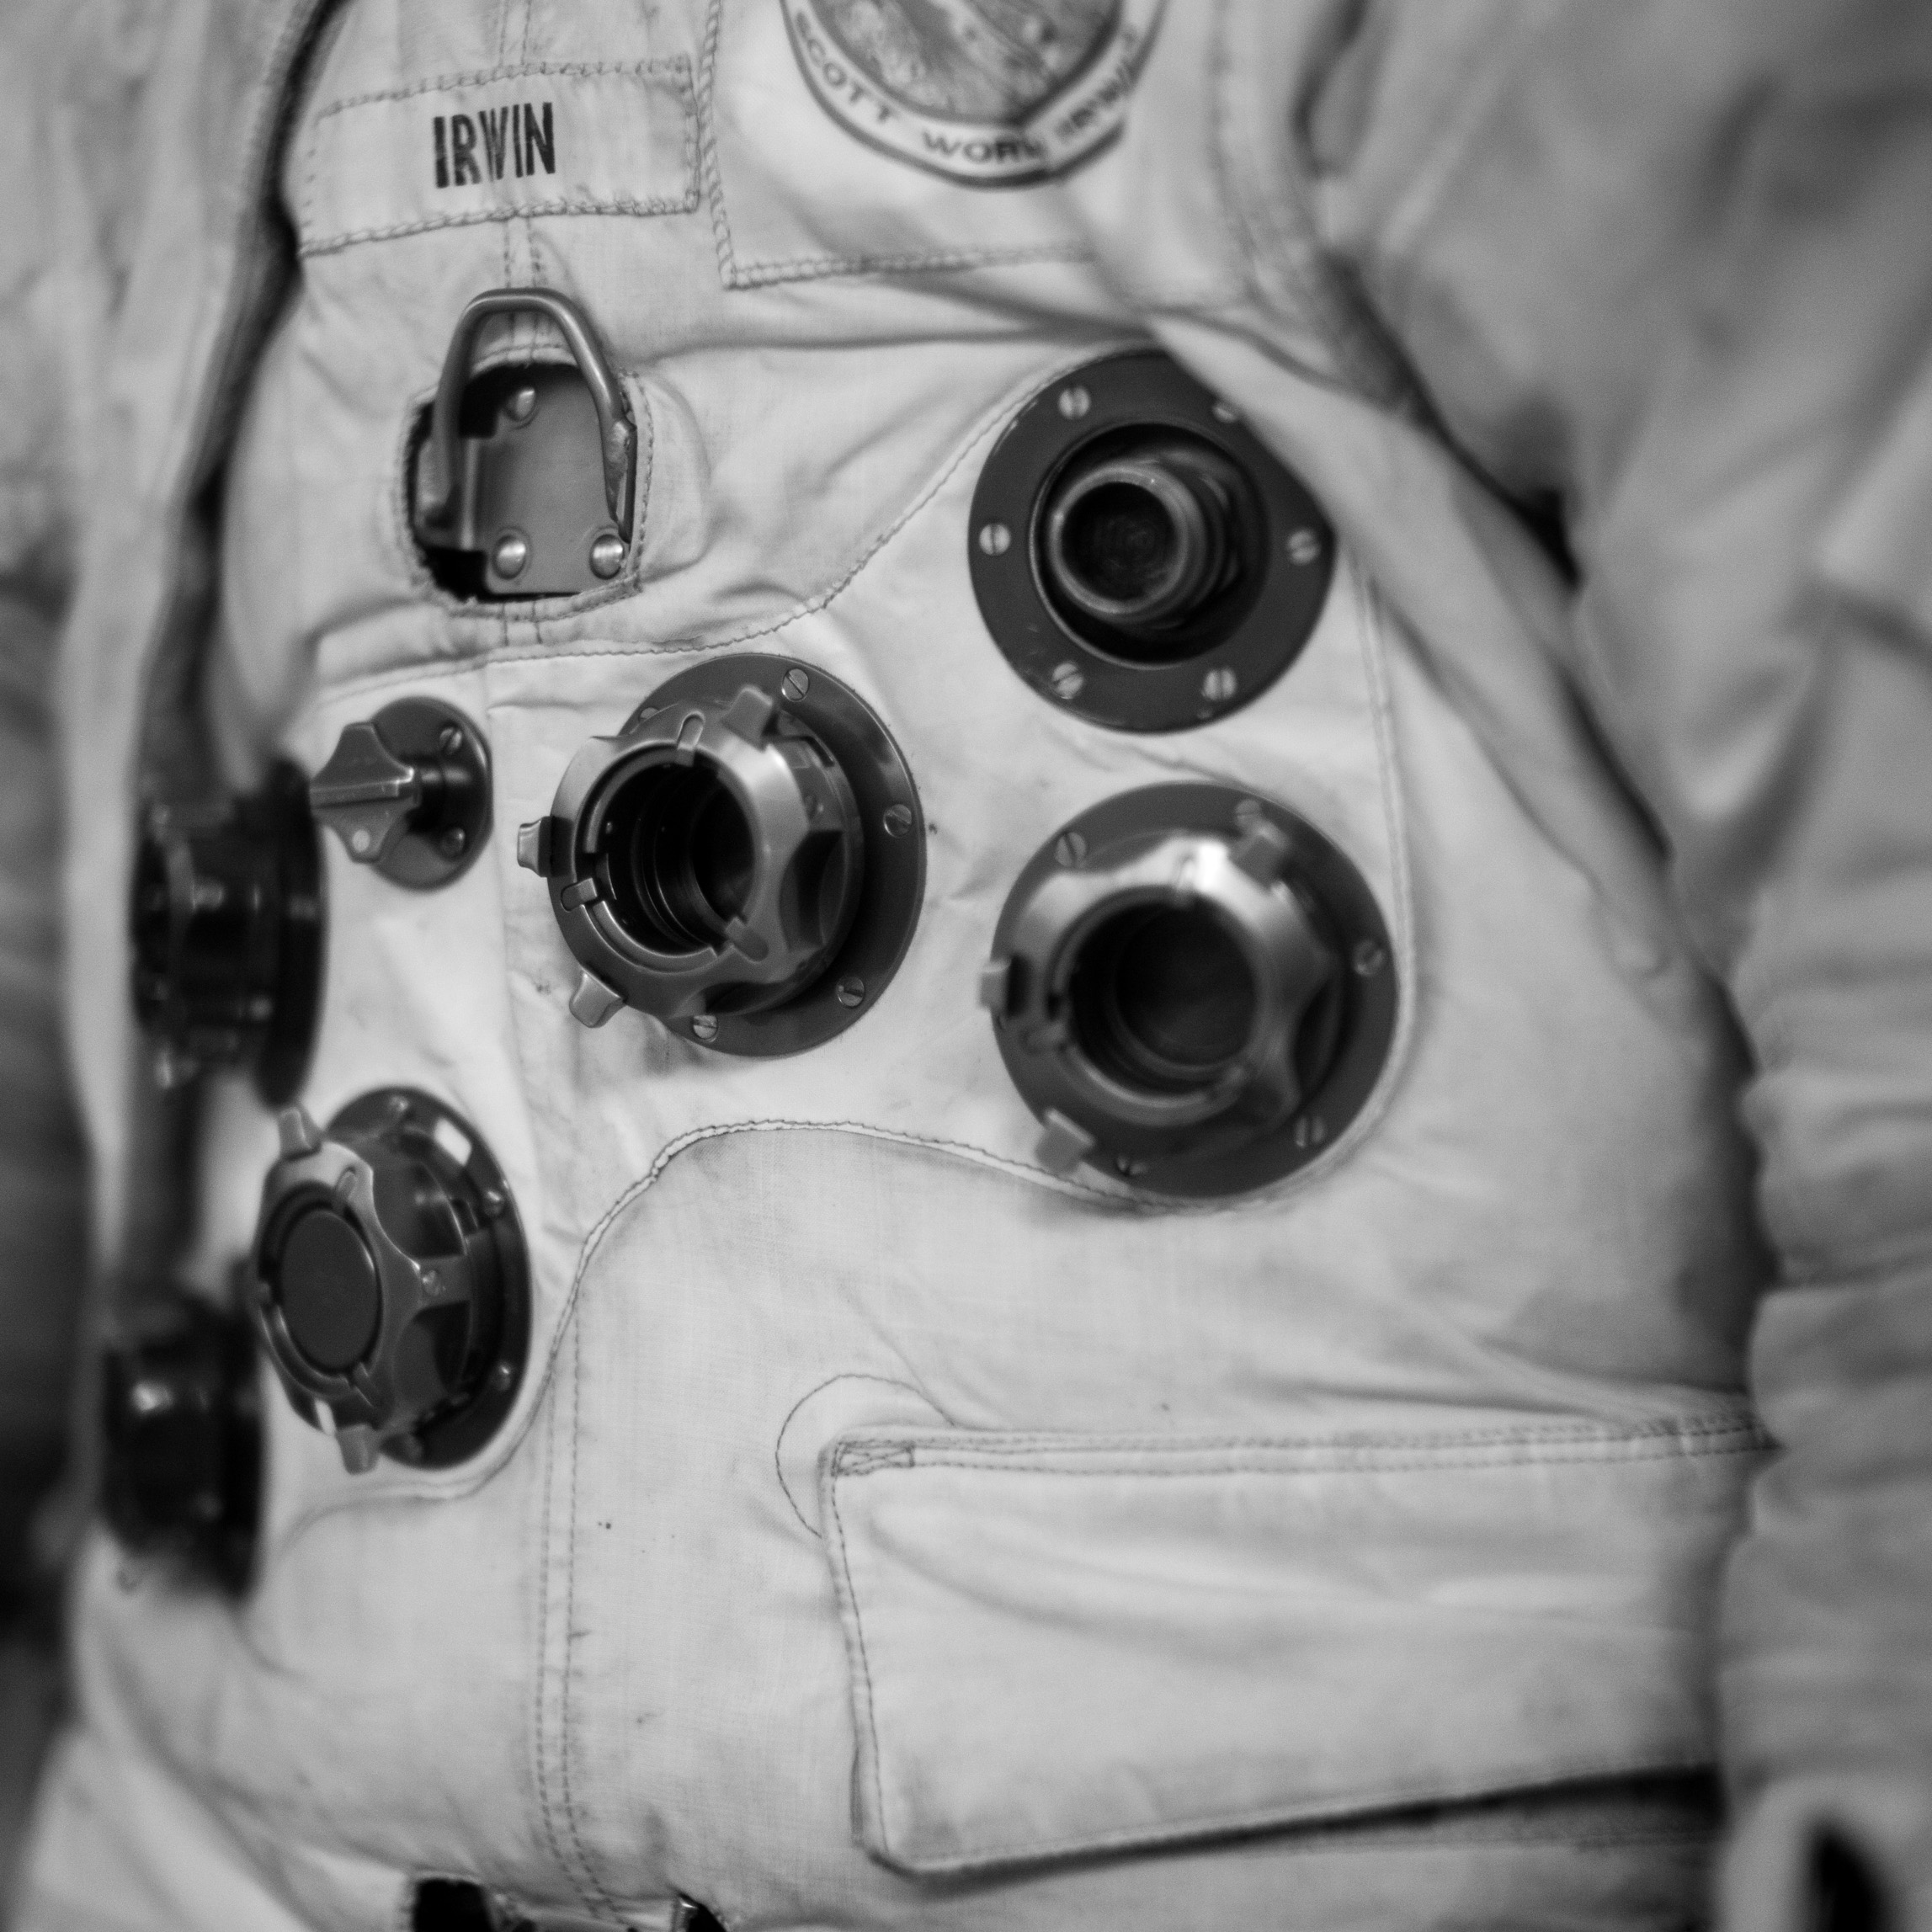 Close-up detail of the space suit worn by one of the astronauts on a space flight.